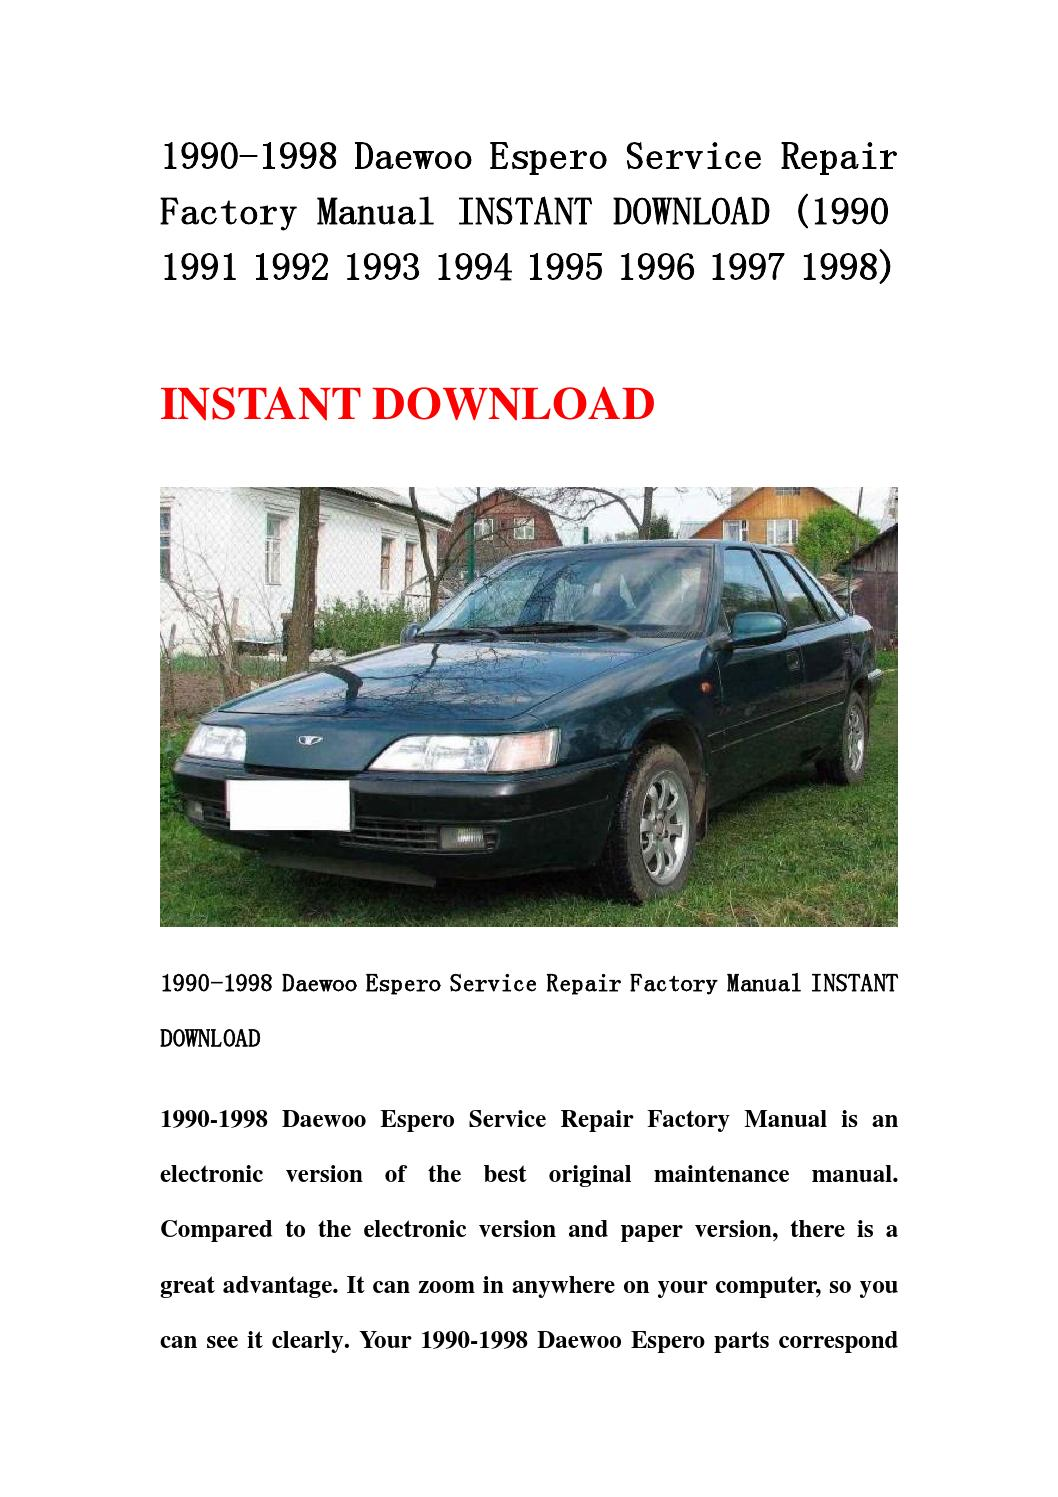 1990 1998 daewoo espero service repair factory manual instant download  (1990 1991 1992 1993 1994 199 by d3bestmanual - issuu